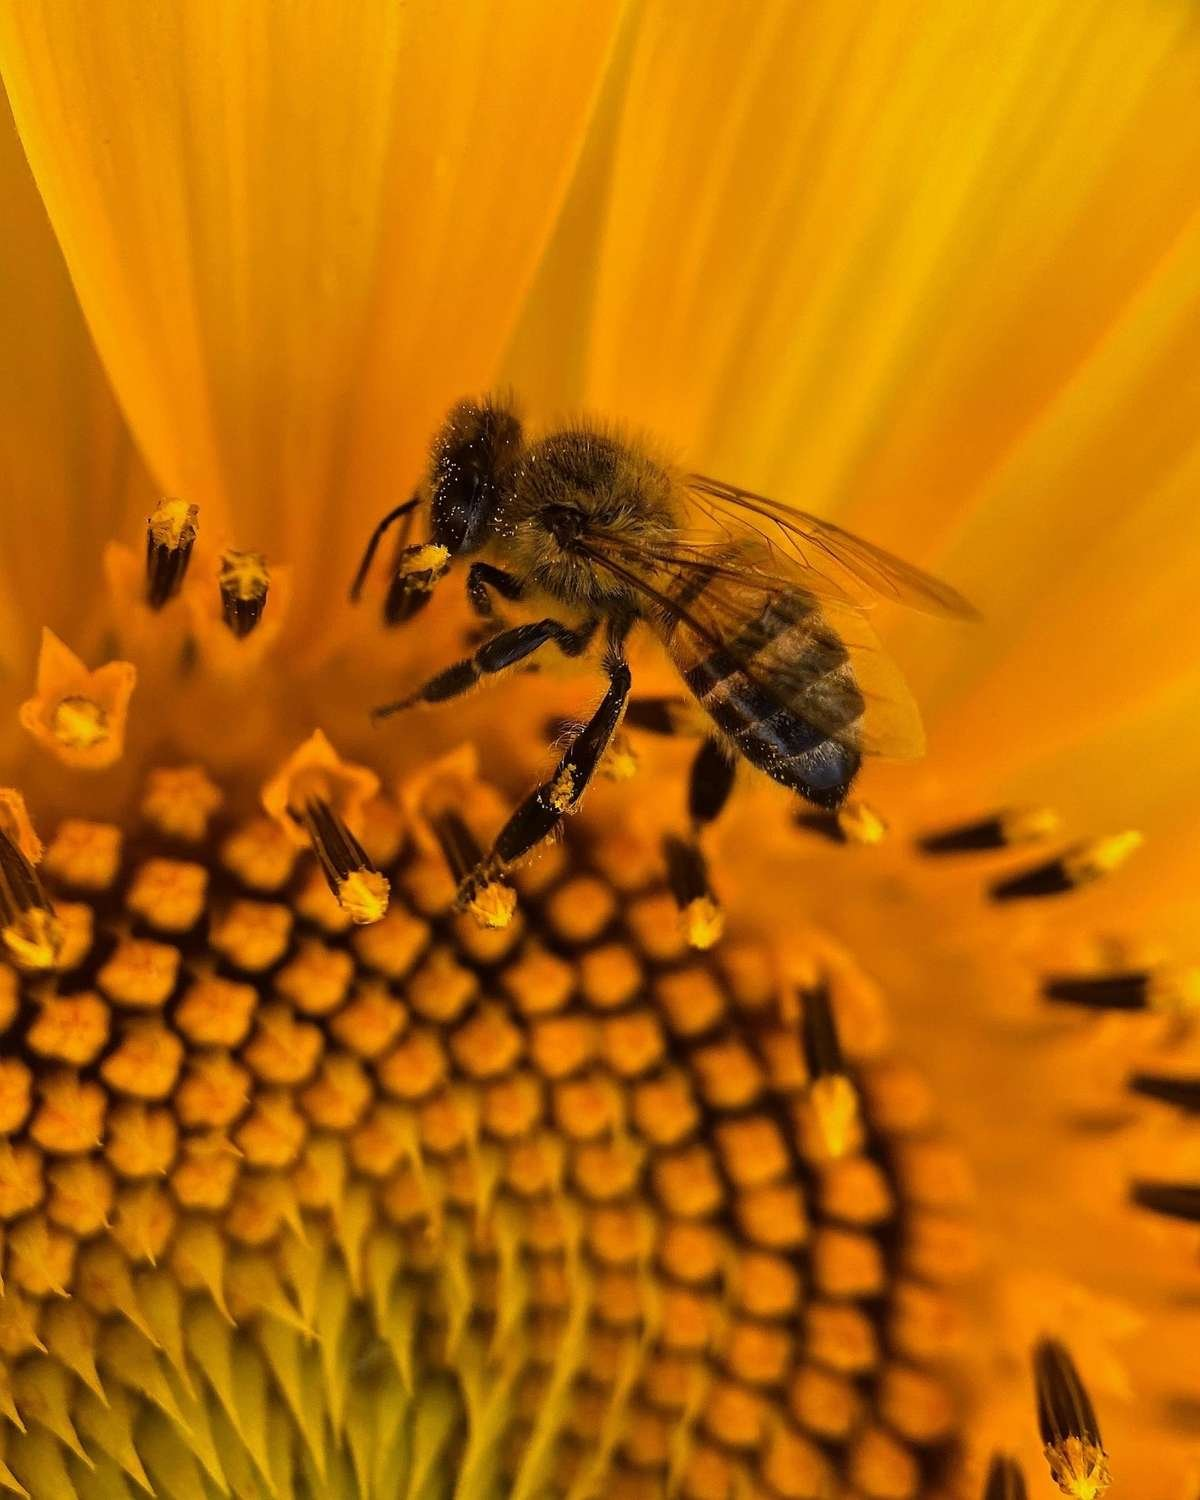 bumble bee pollinating a sunflower